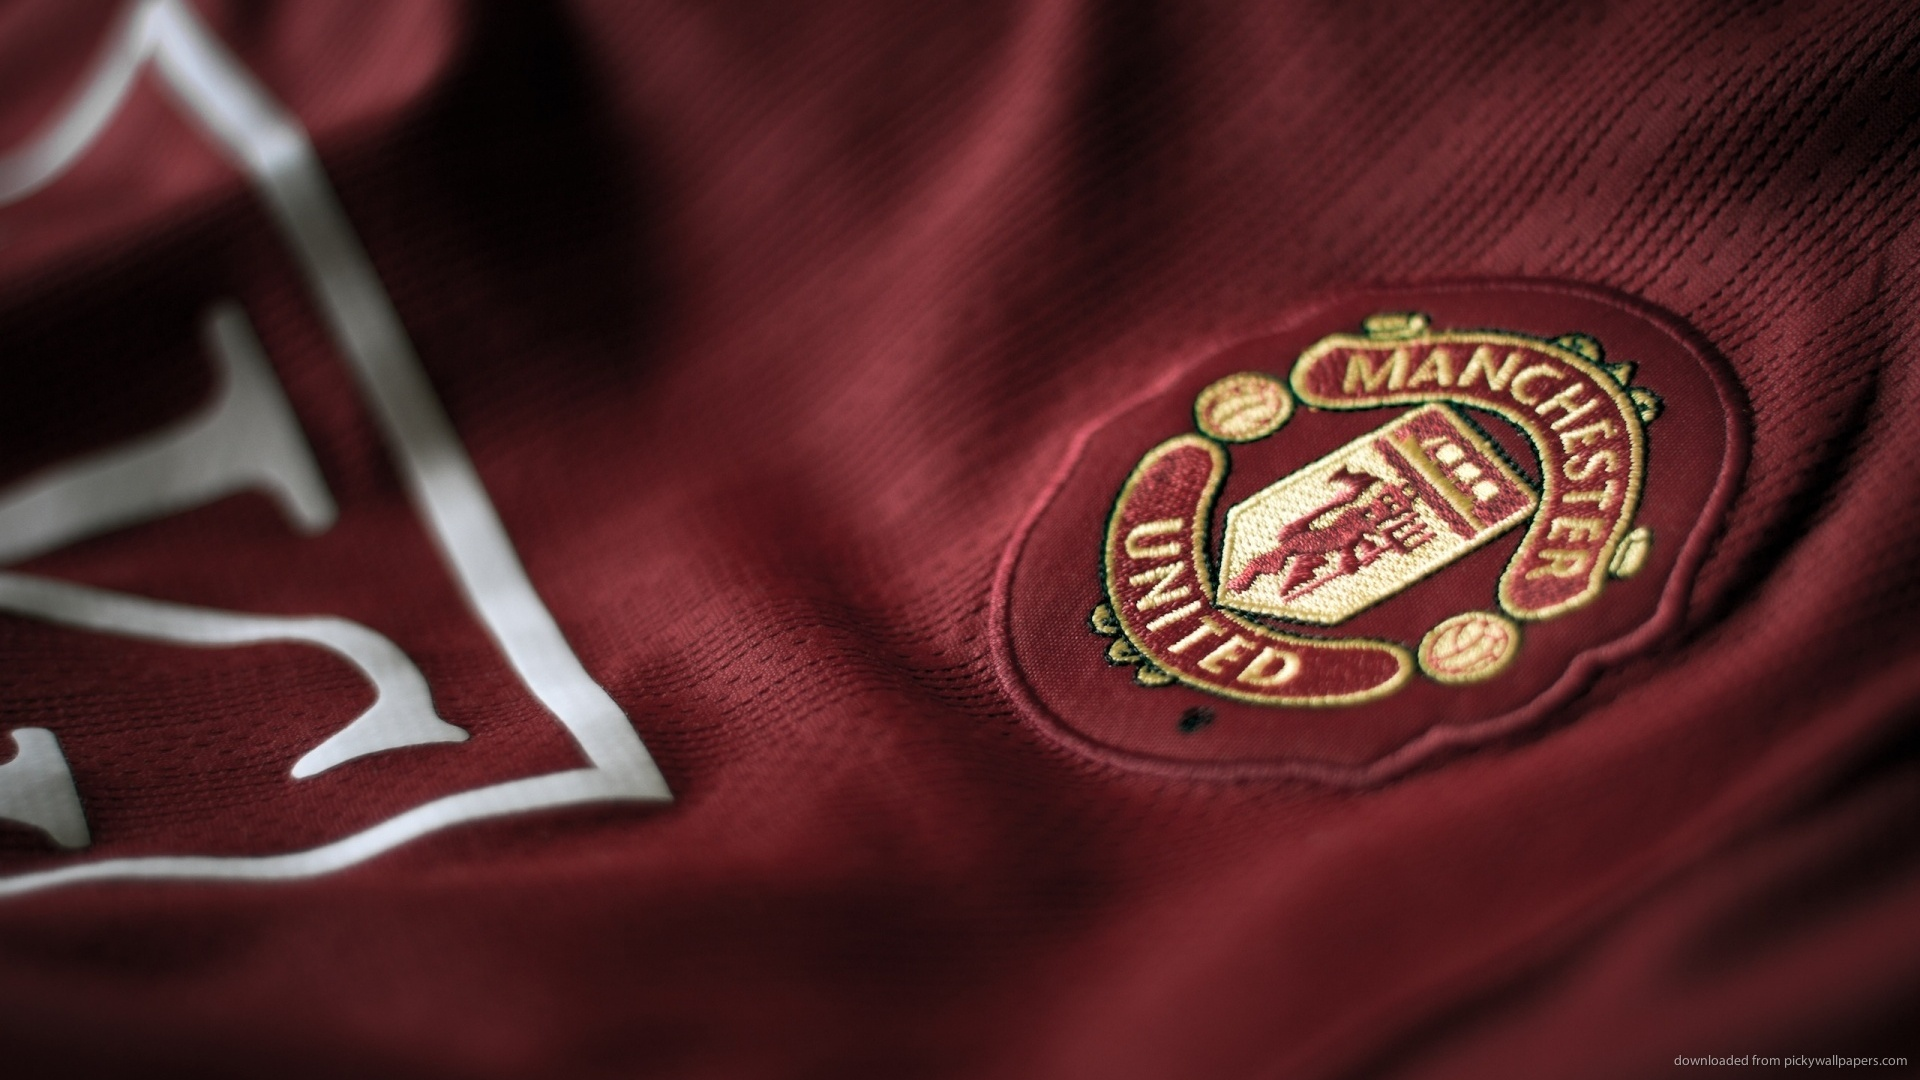 Manchester United Costume Hd Wallpaper